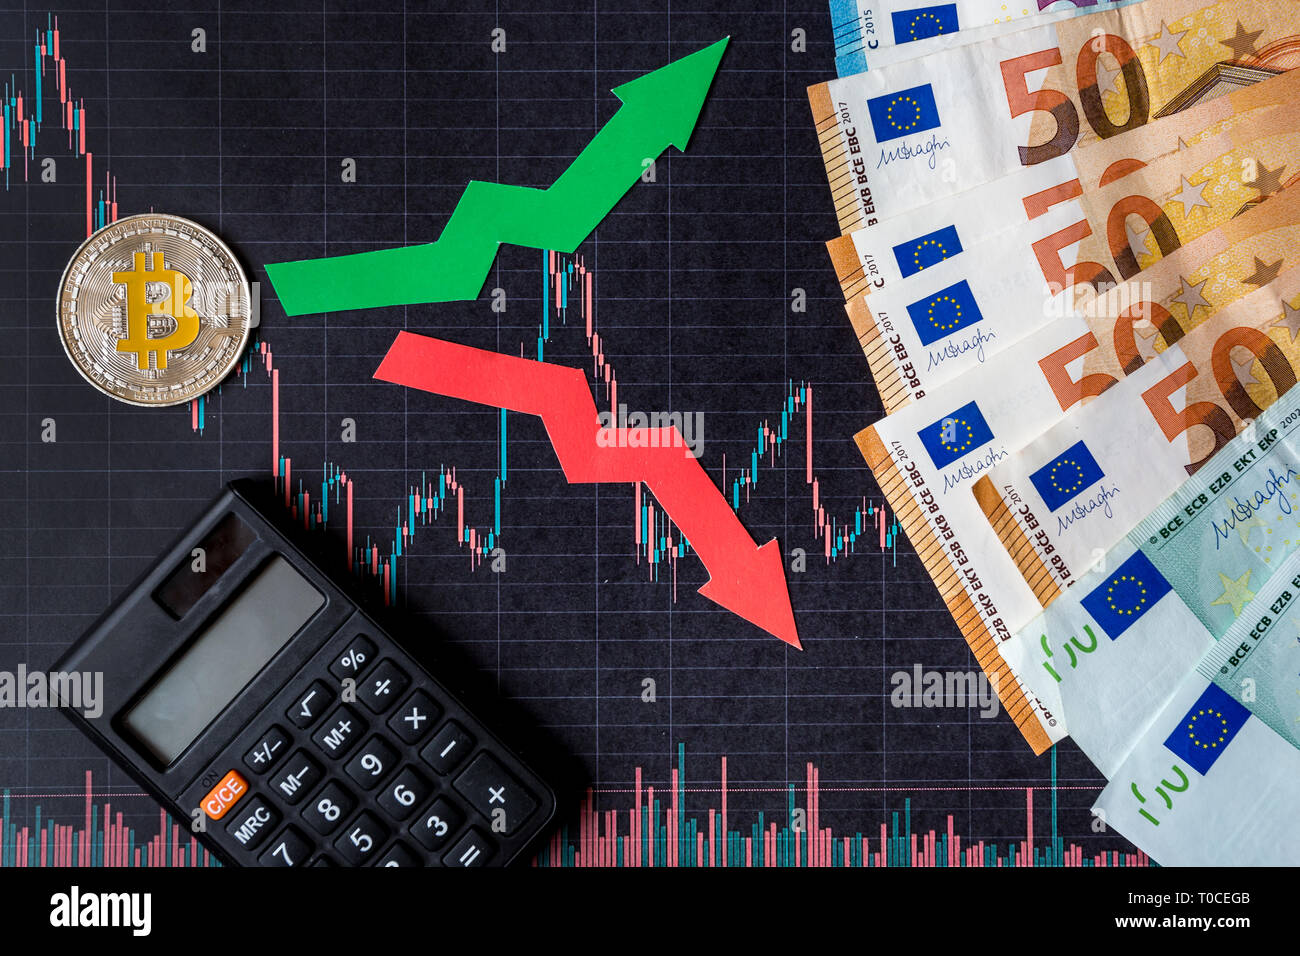 fluctuations  and forecasting of exchange rates of virtual money. Red and green arrows with golden Bitcoin ladder on black paper forex chart backgroun - Stock Image